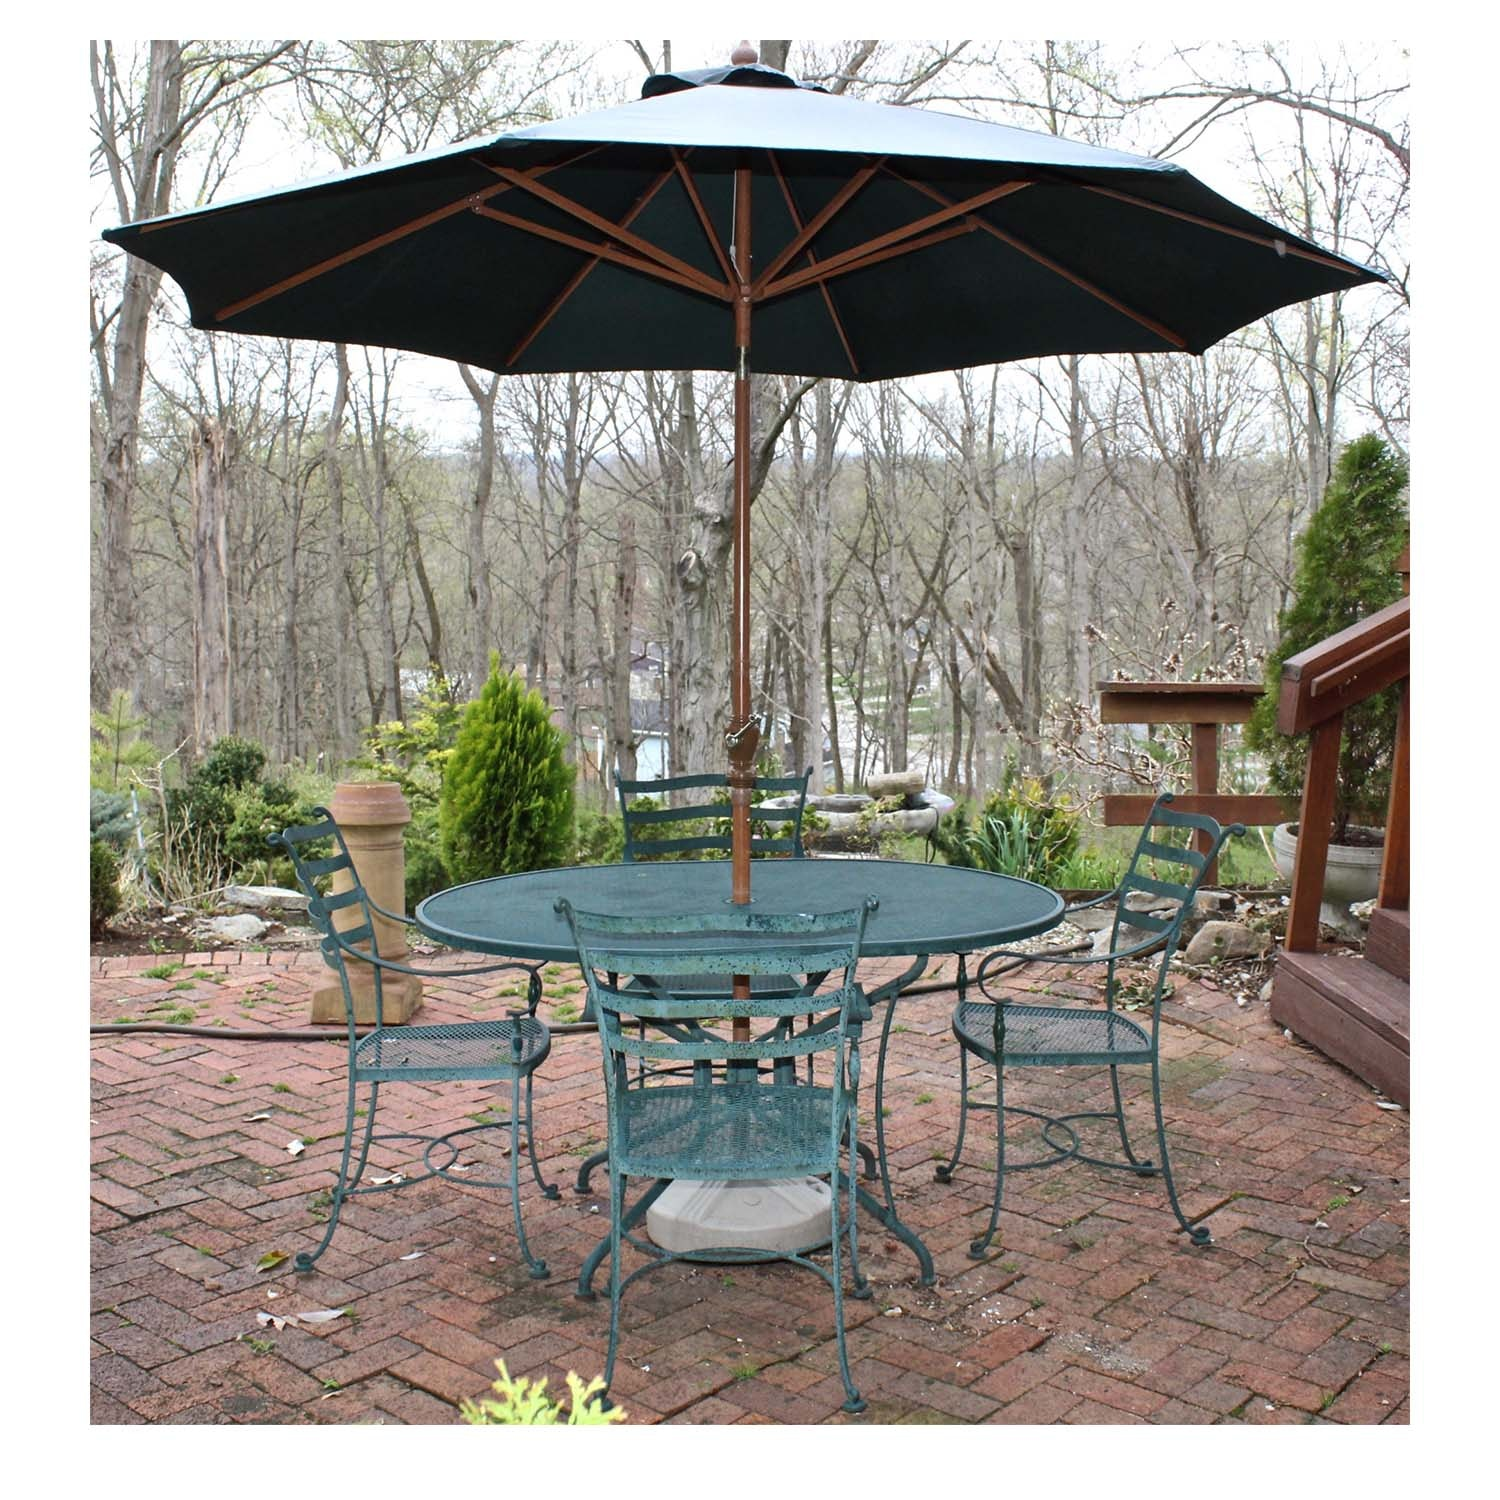 Green Iron Patio Dining Table, Chairs and Umbrella